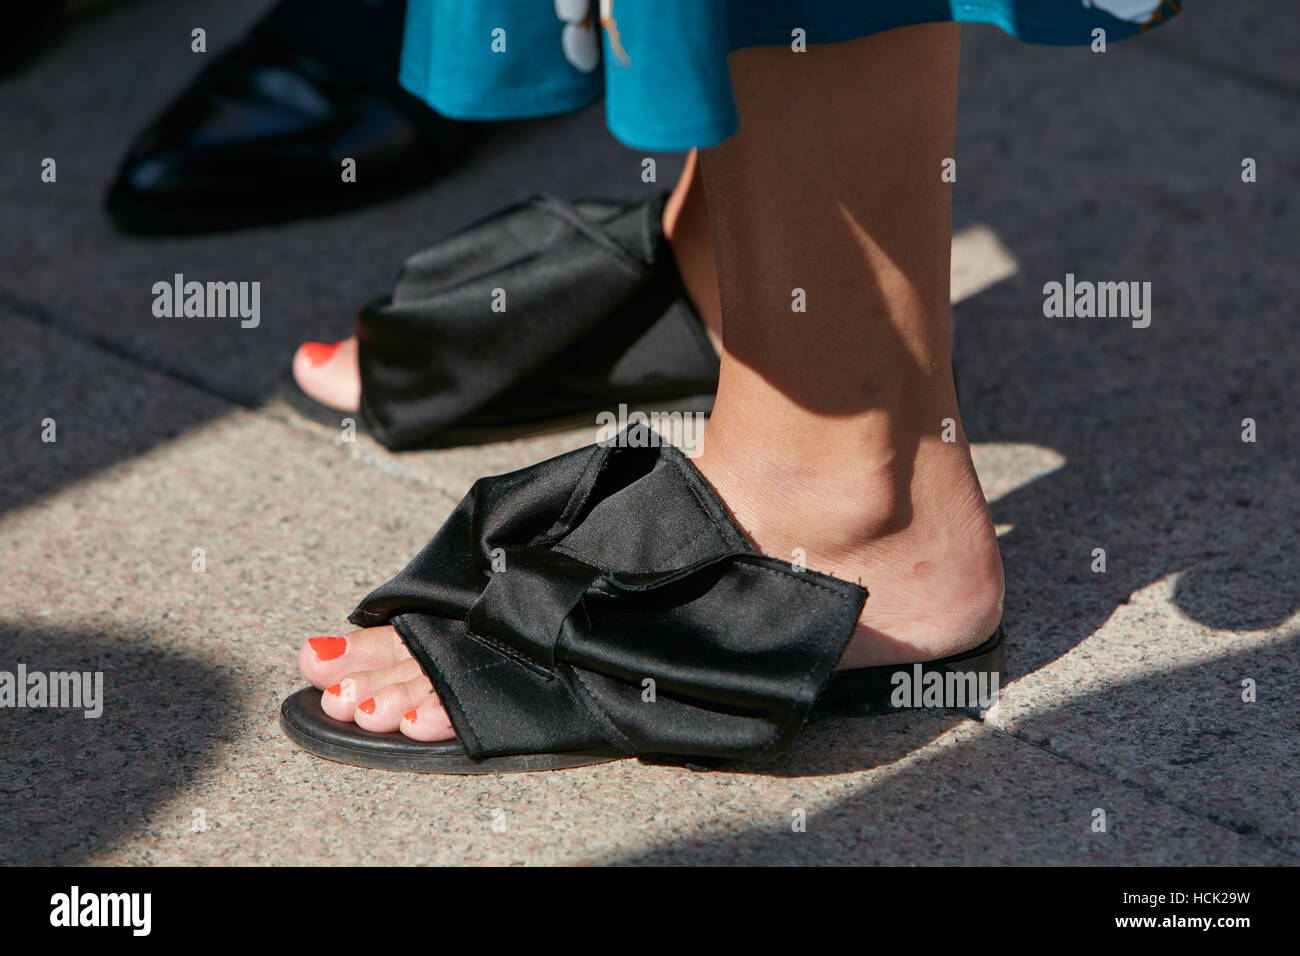 Woman with black ribbon sleepers before Stella Jean fashion show, Milan Fashion Week street style on September 25, - Stock Image